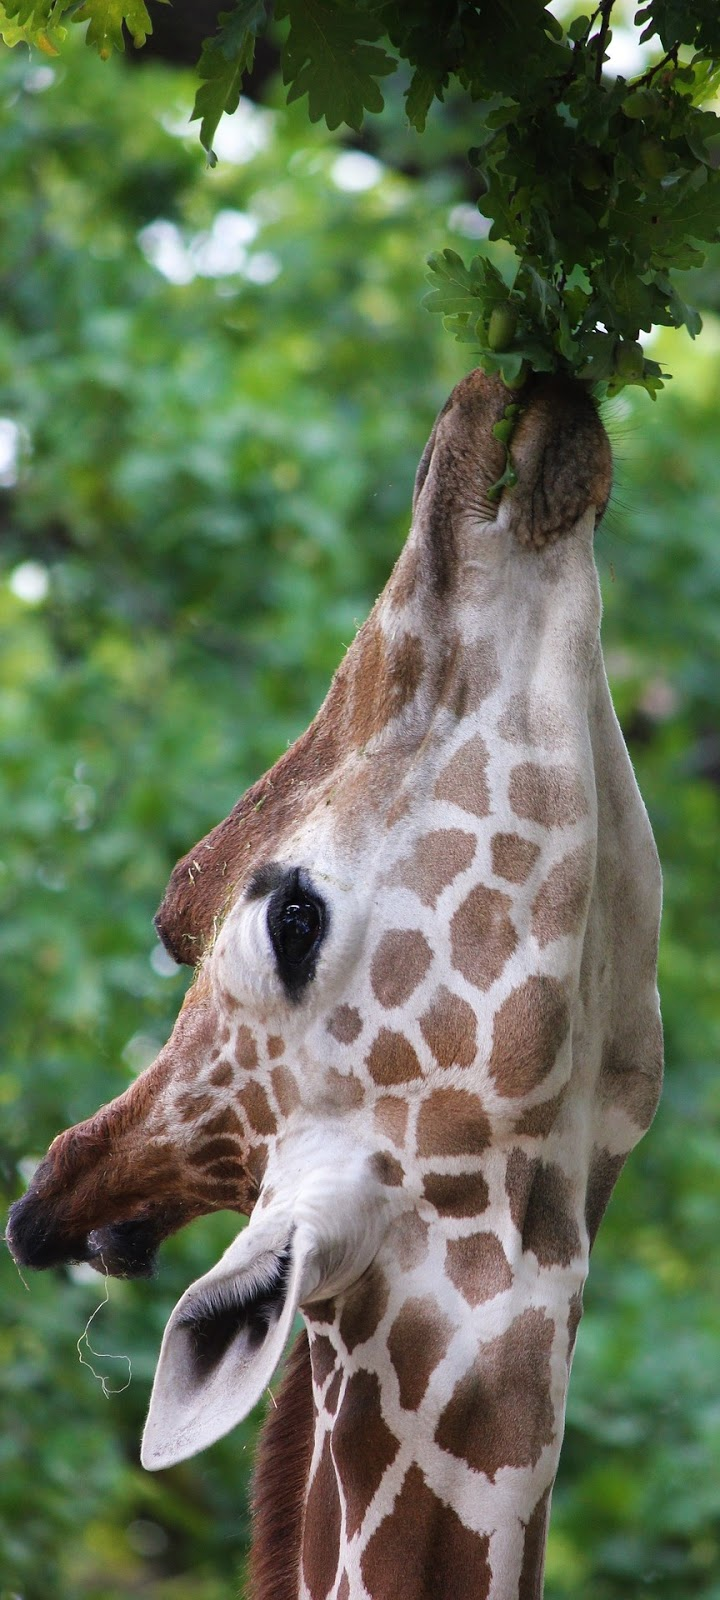 A giraffe eats leaves from a tree.